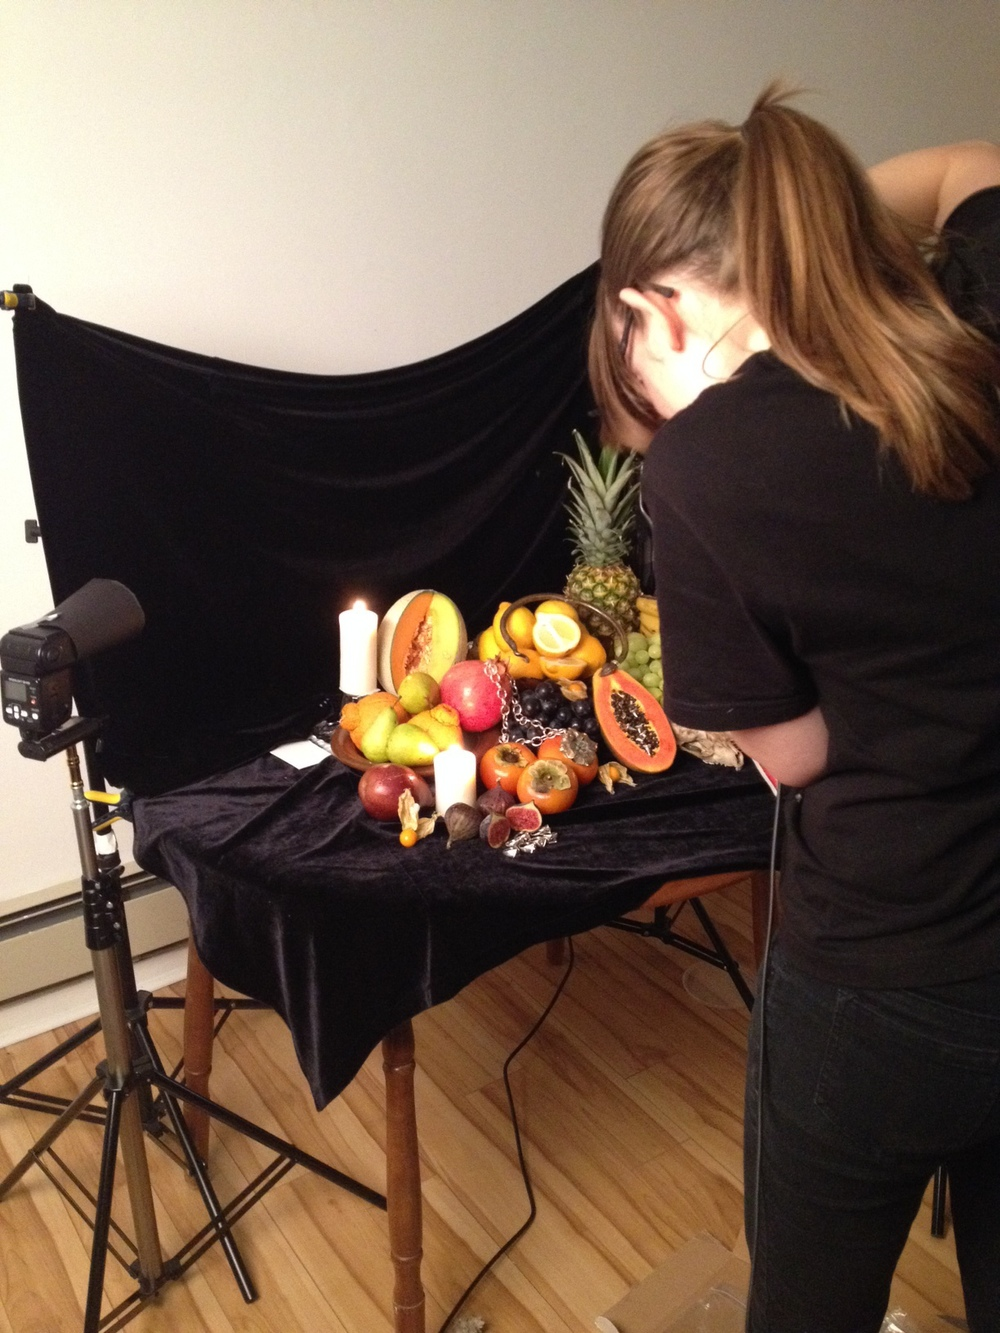 Classical Still Life Shoot in progress with Christina Arsenault.